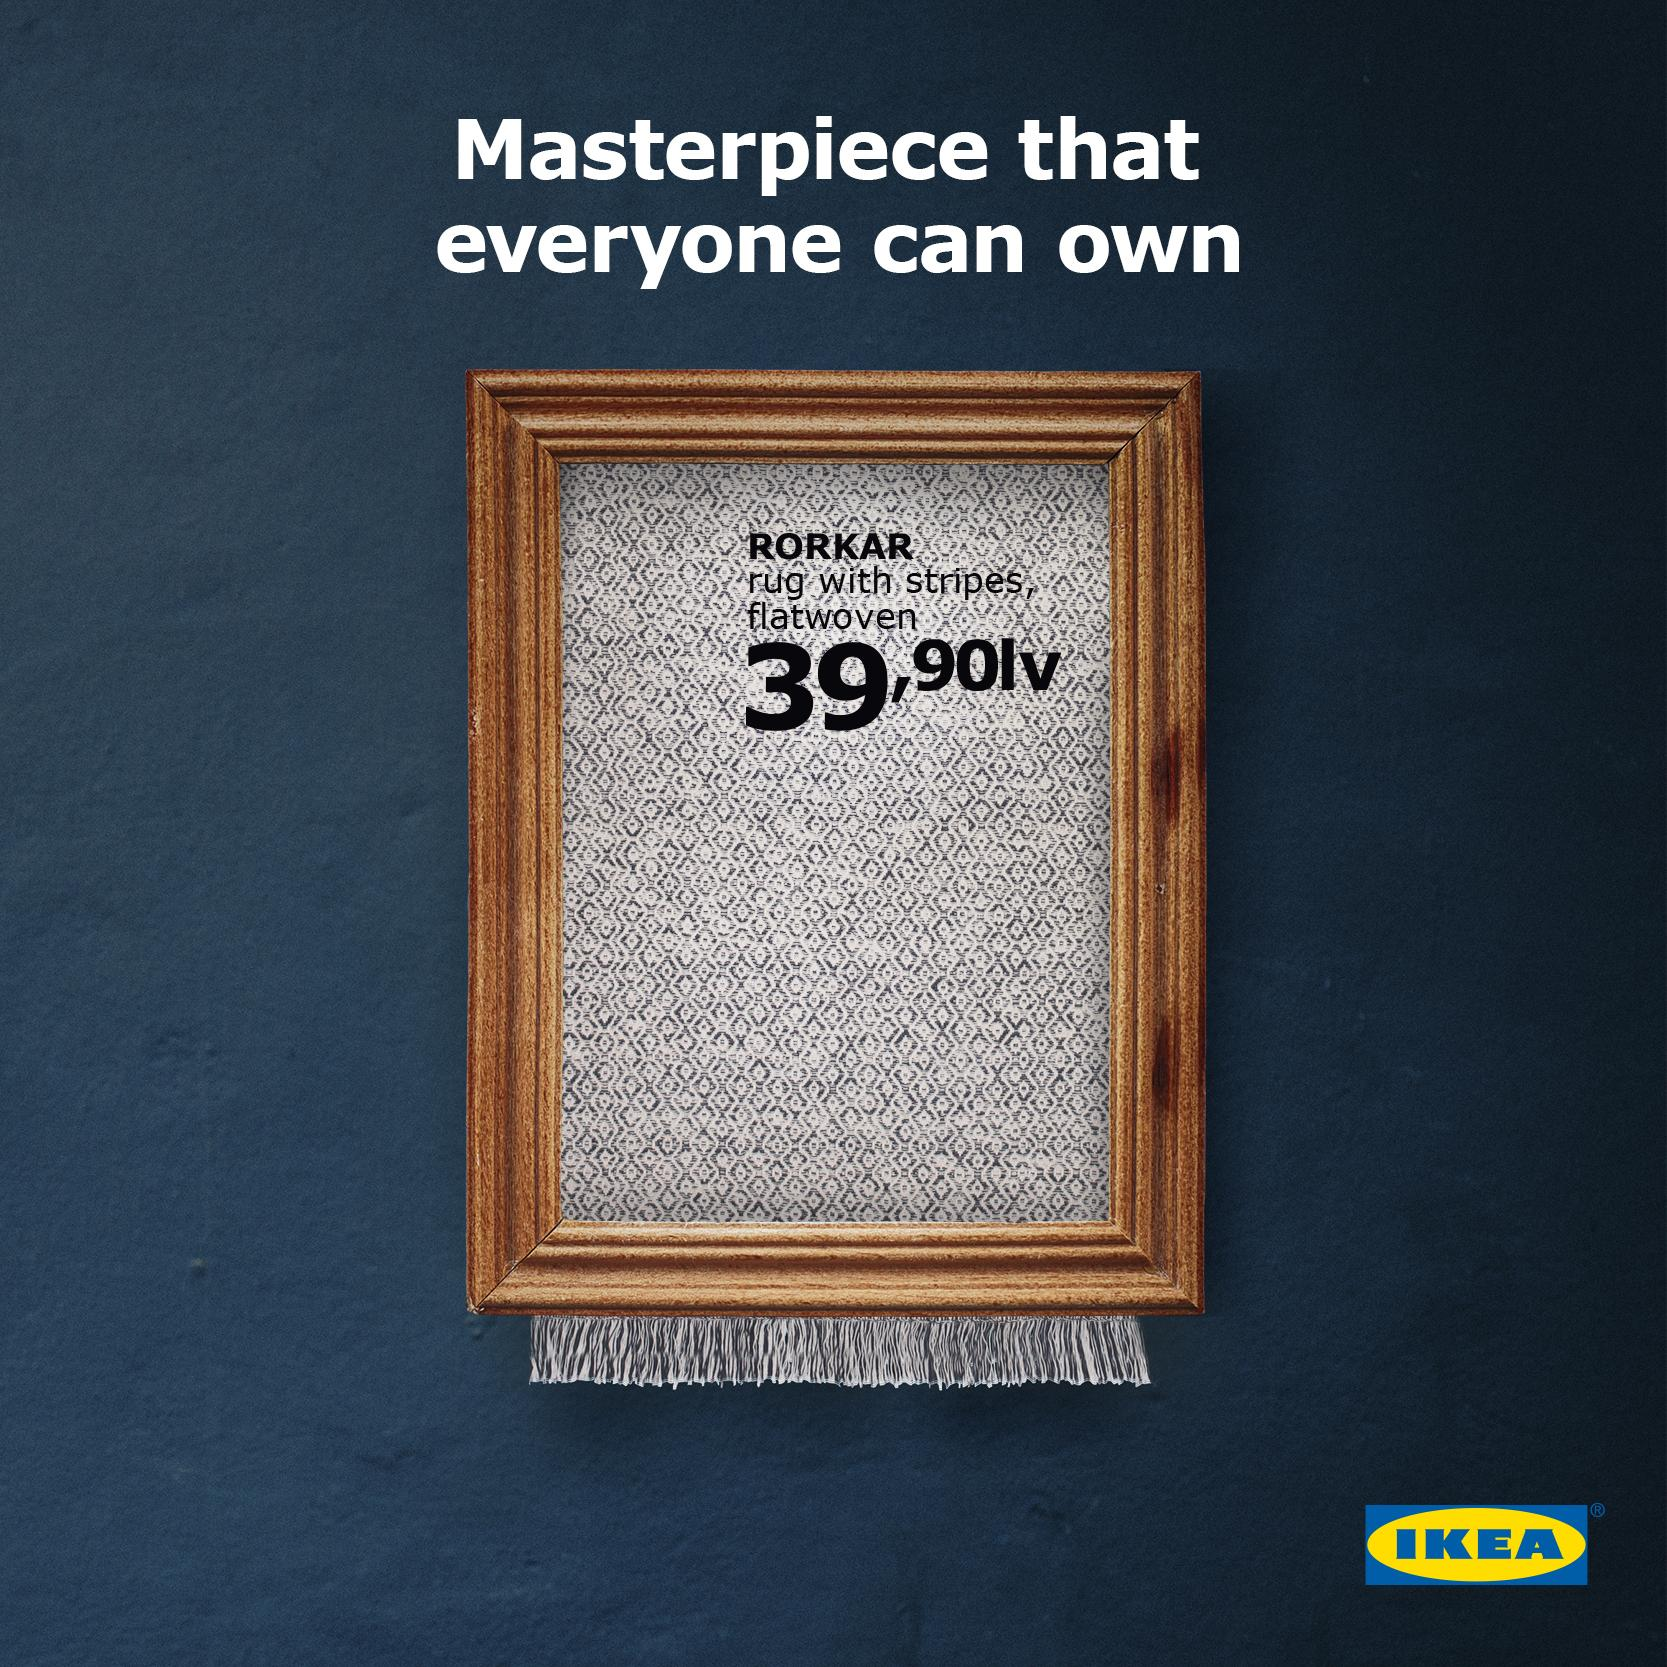 IKEA: Masterpiece